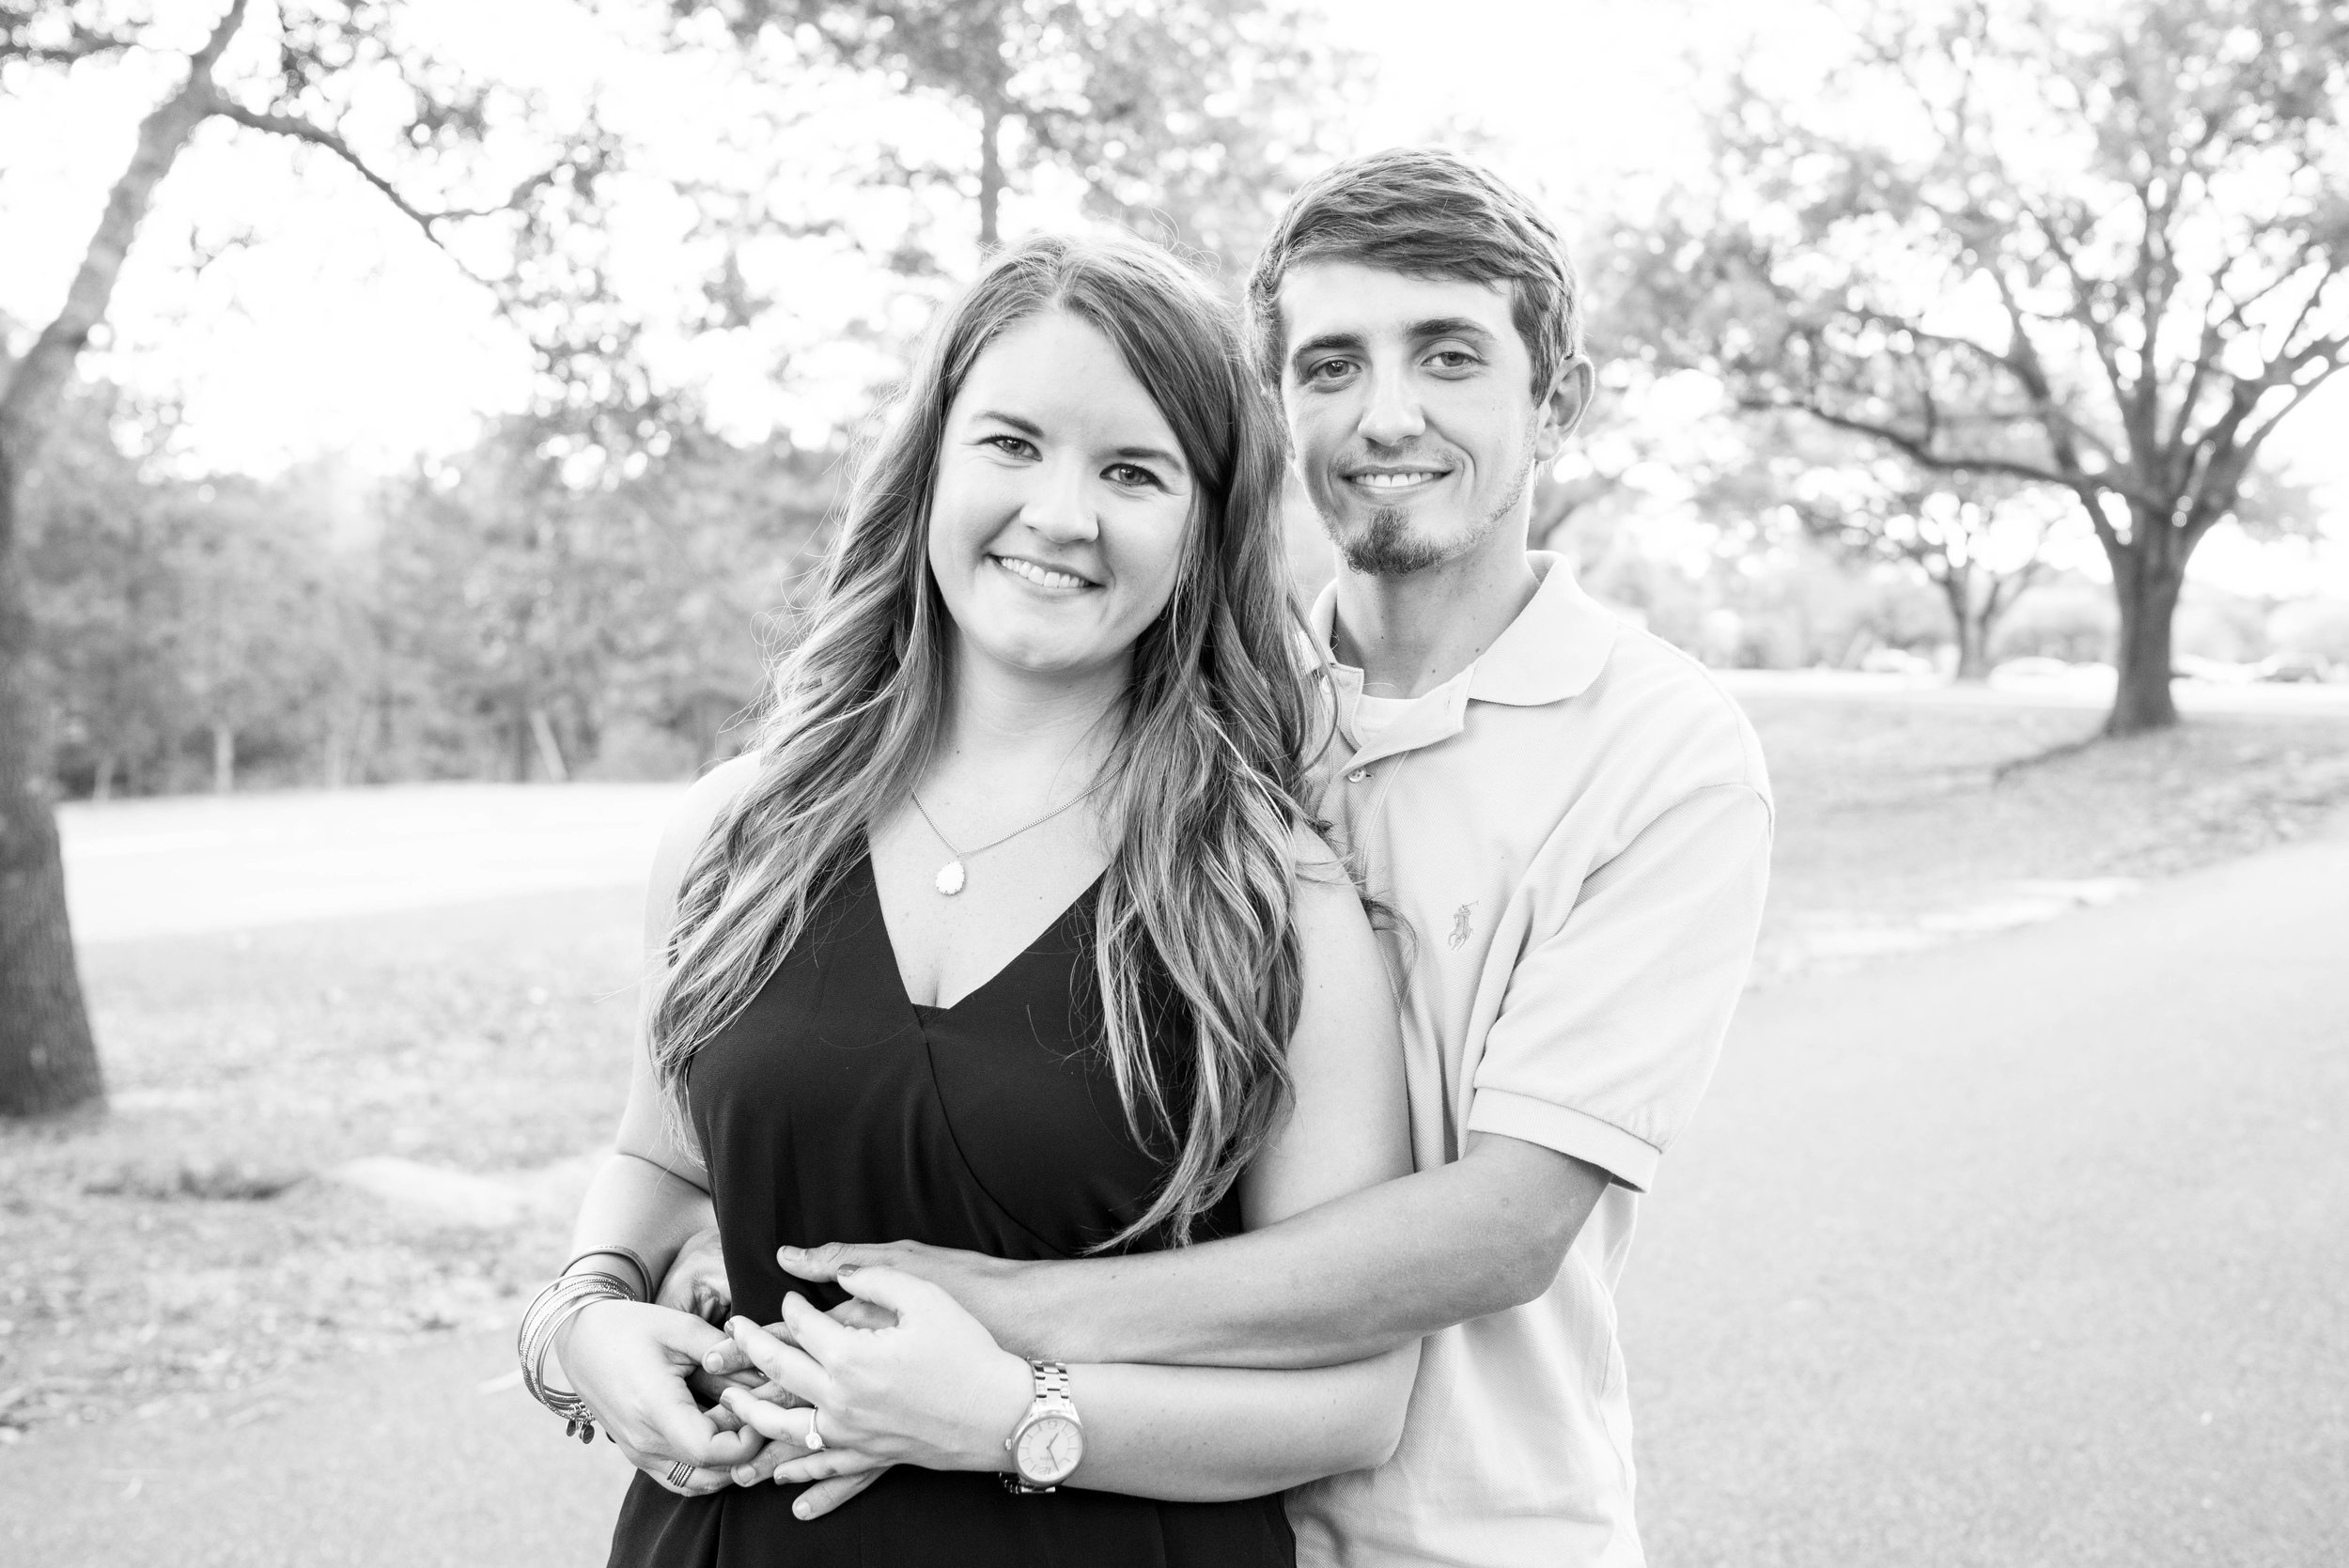 Callie & JT | Proposal-178.jpg